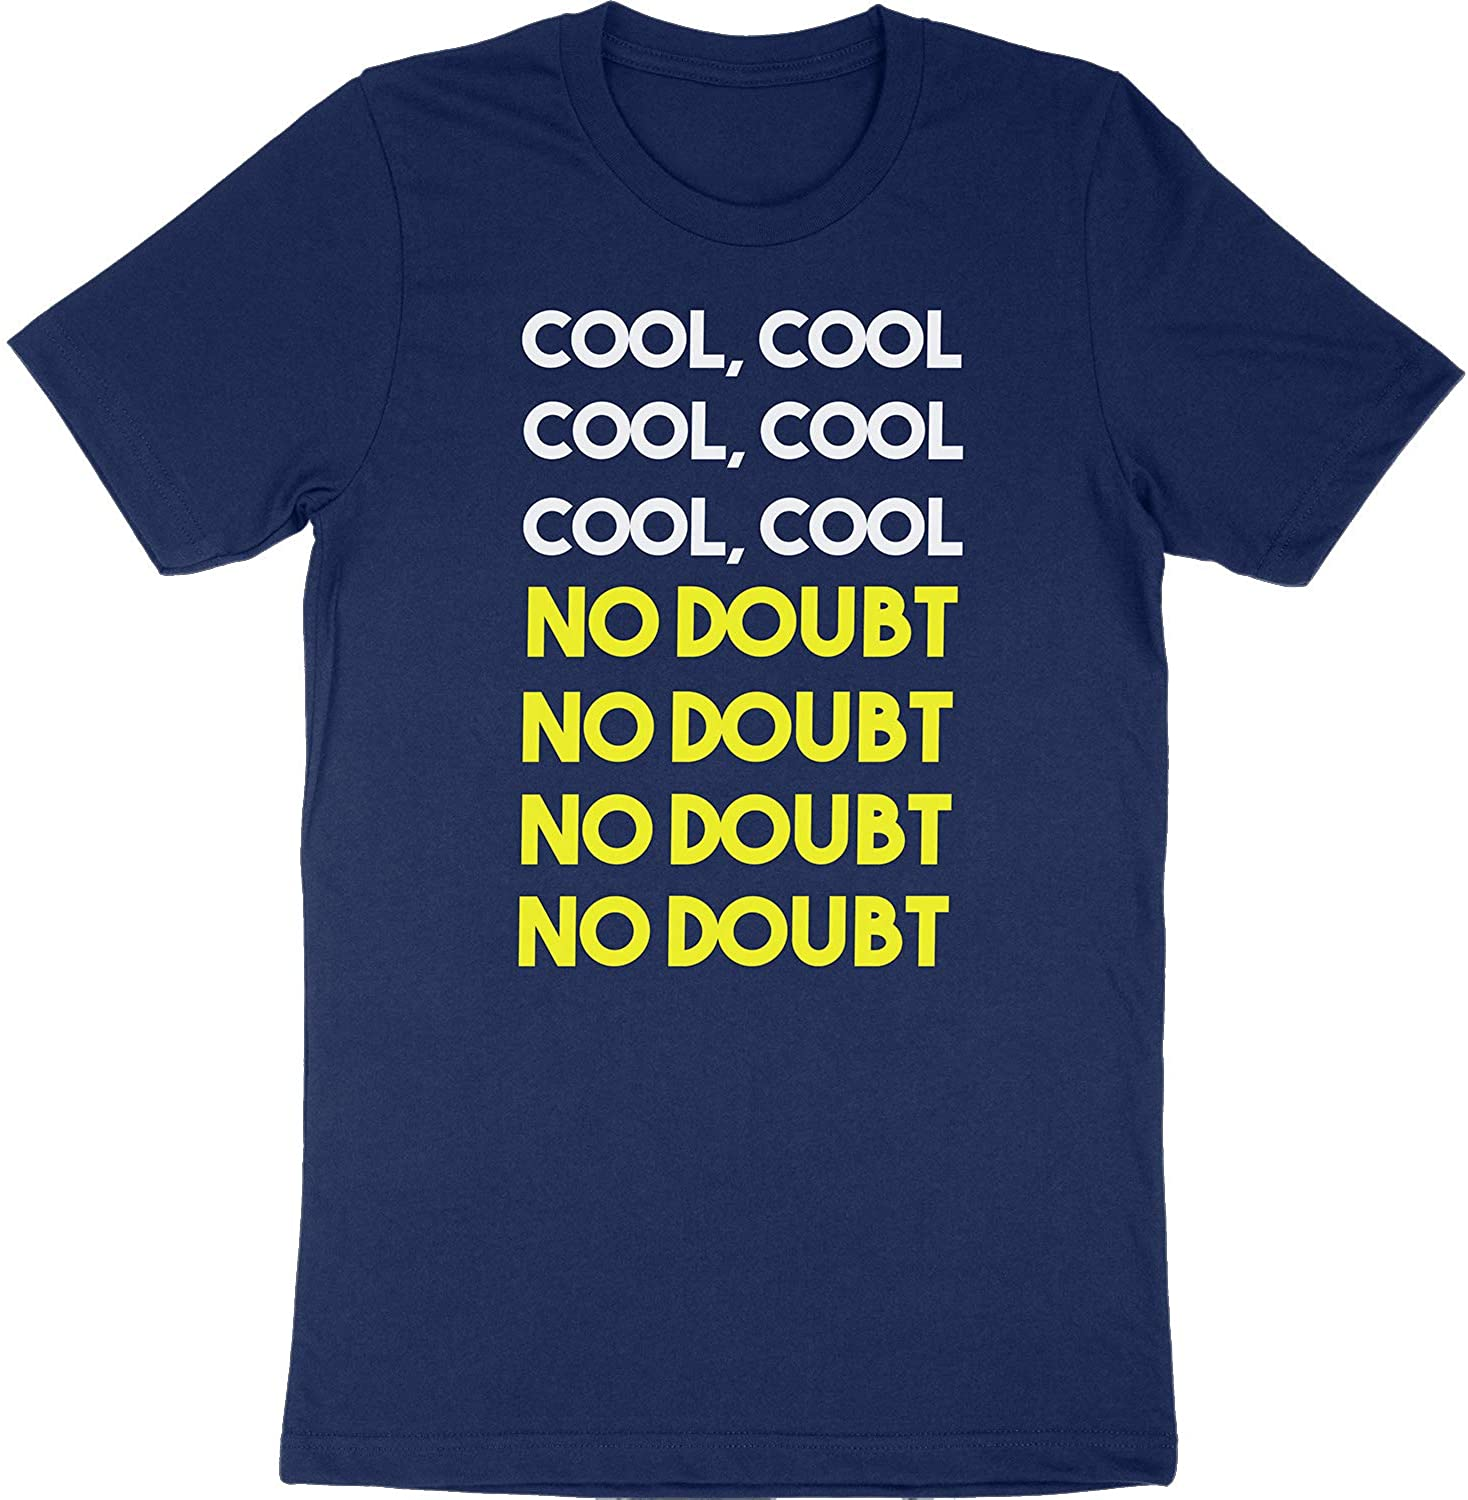 Brooklyn Nine Nine 99 Cool Cool No Doubt Funny TV Show Fan Gift Adults Unisex T-Shirt